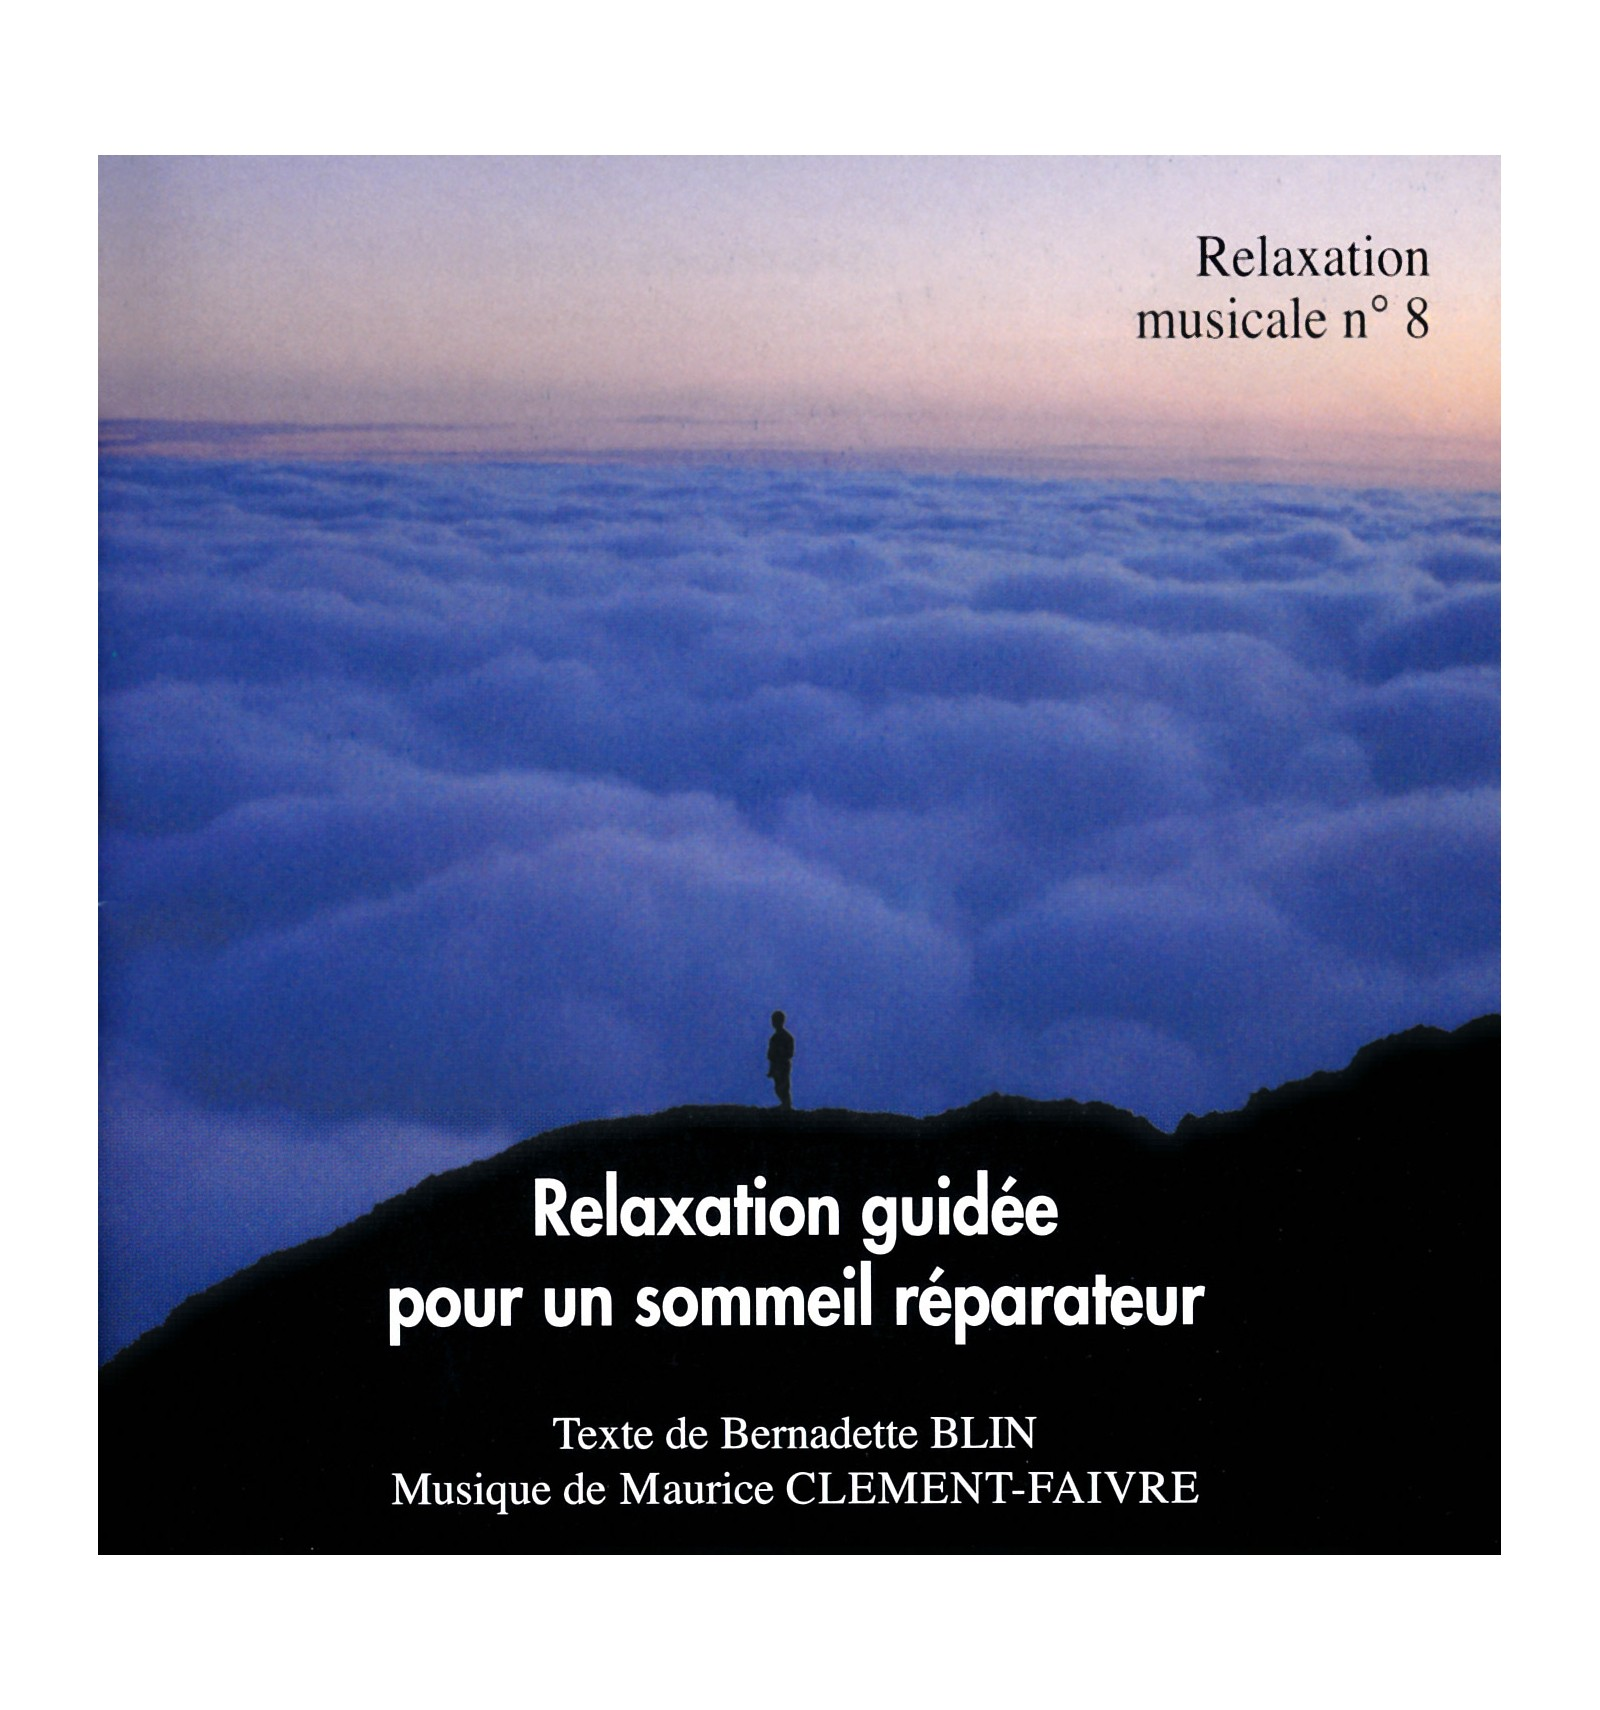 relaxation guidee rapide